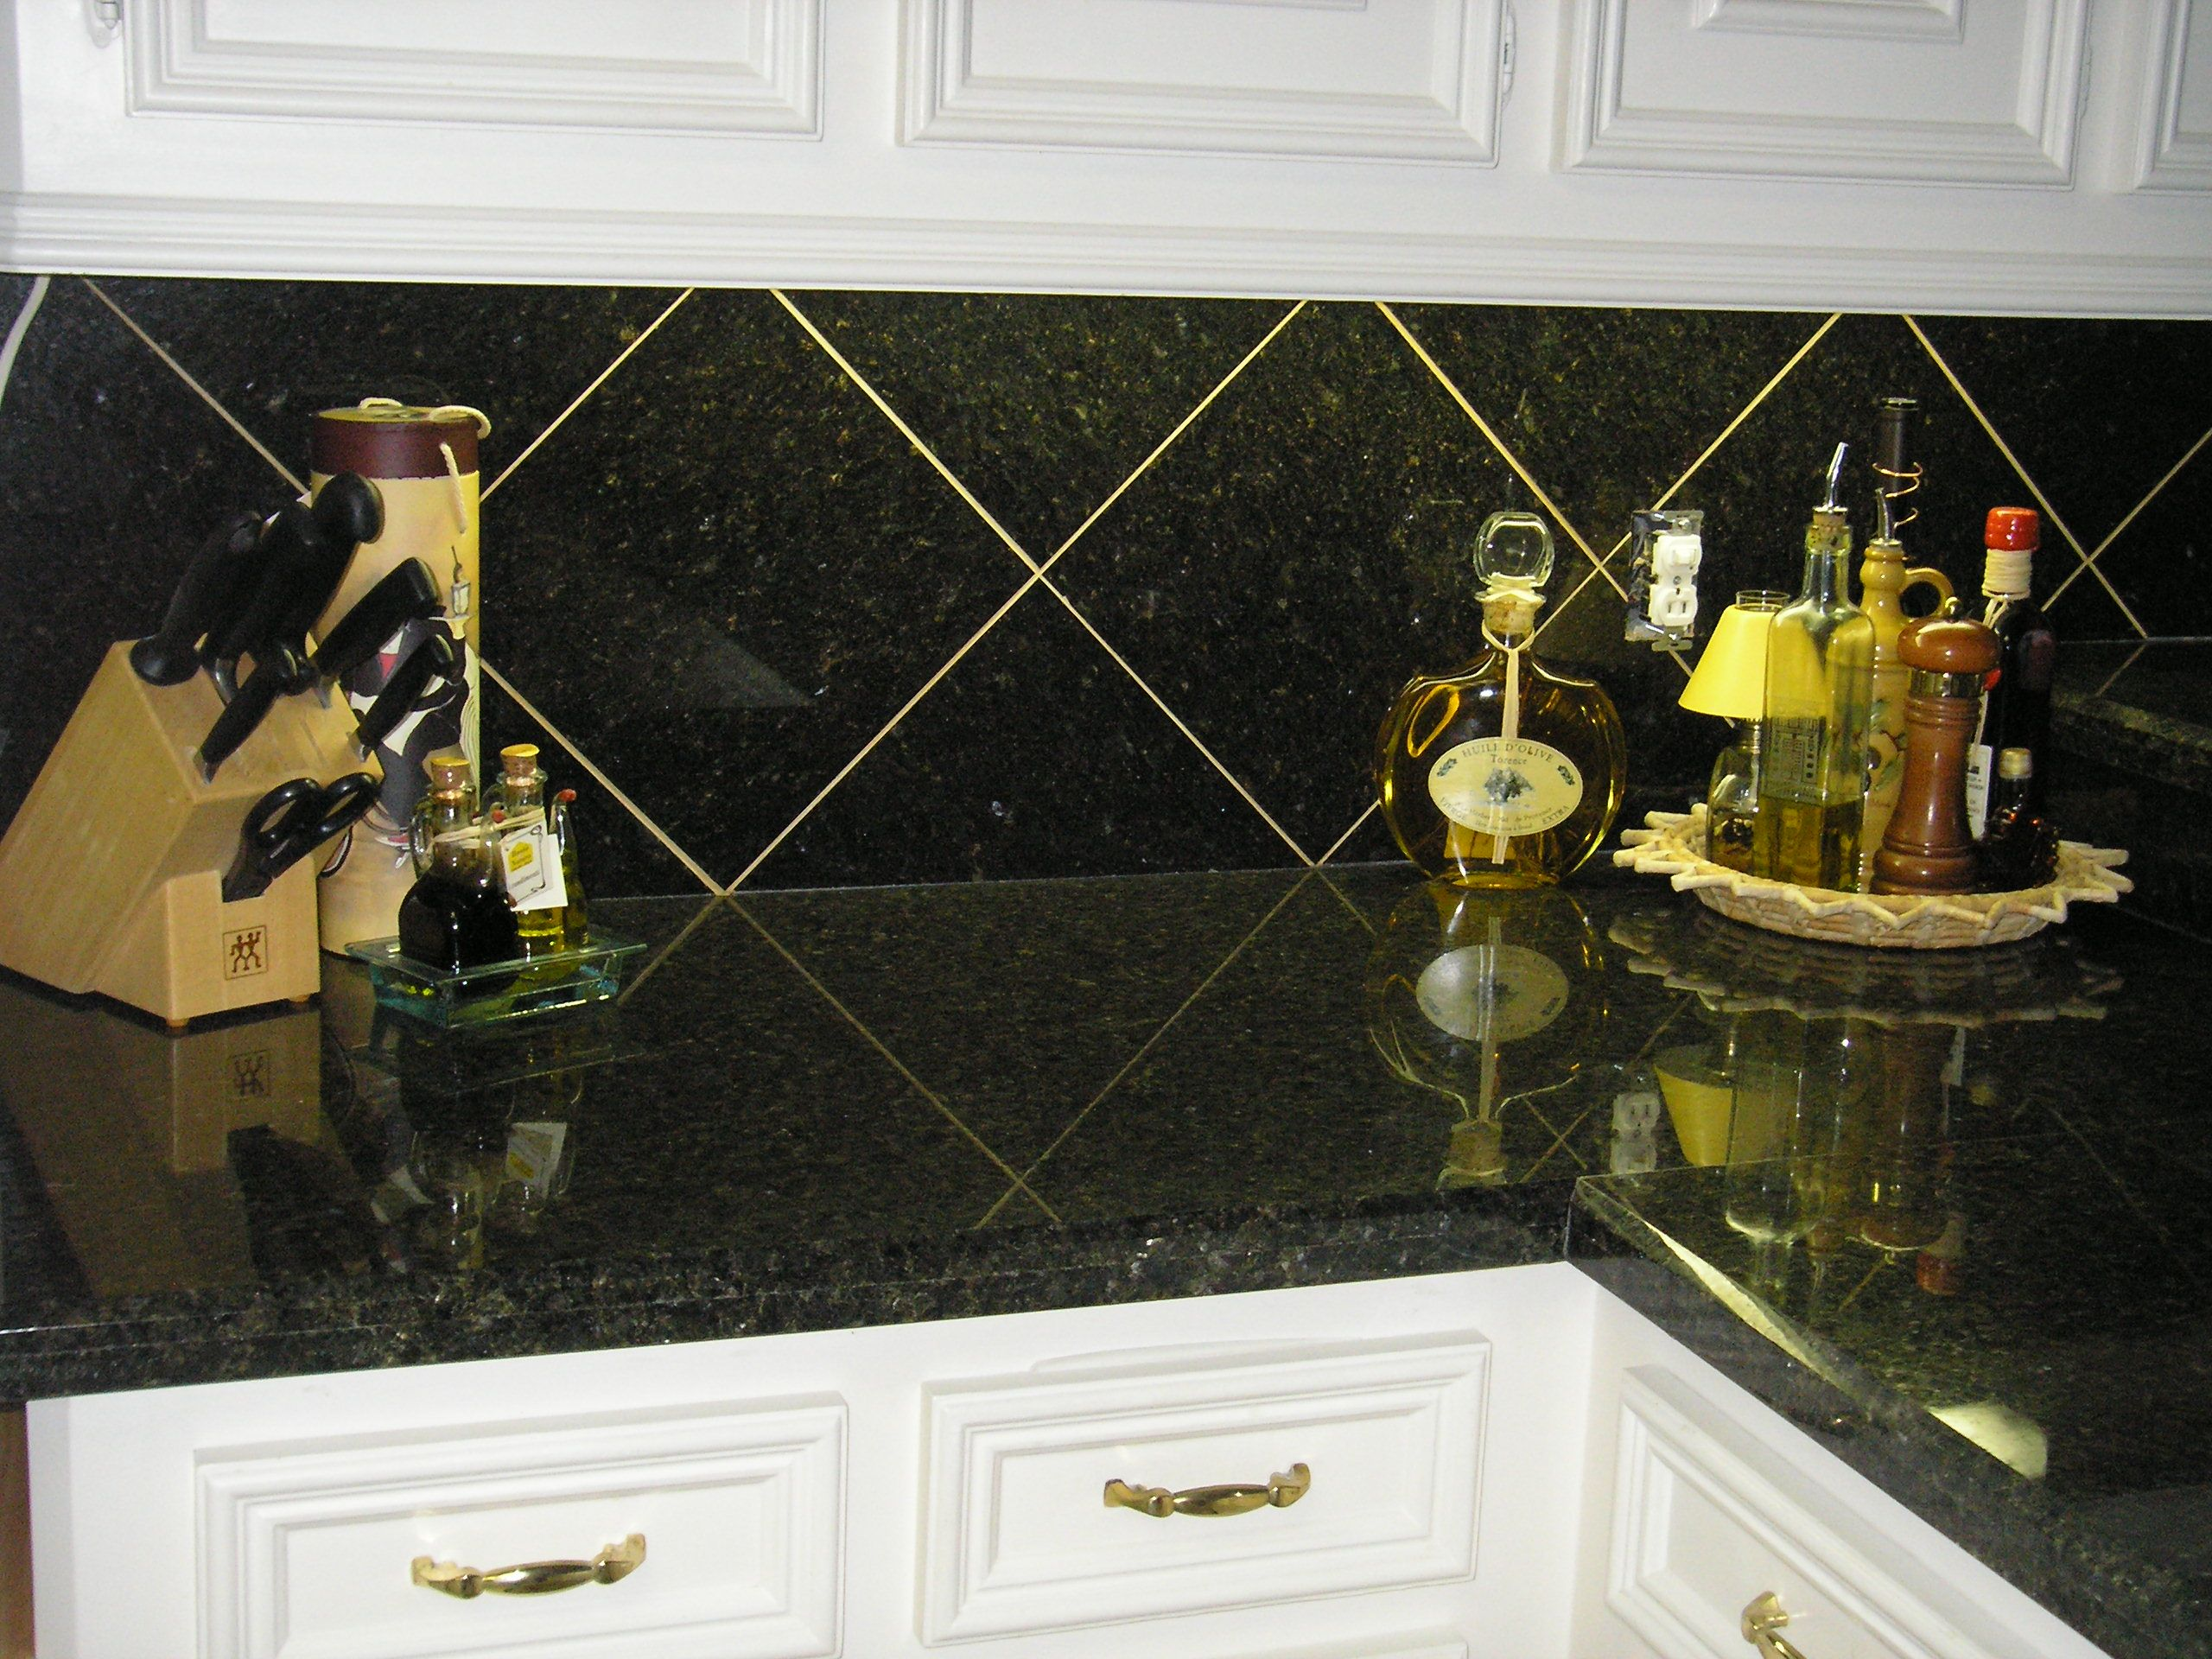 12x12 Granite Diagonal Tile On Backsplash Backsplash Stone Tile Backsplash Tile Backsplash